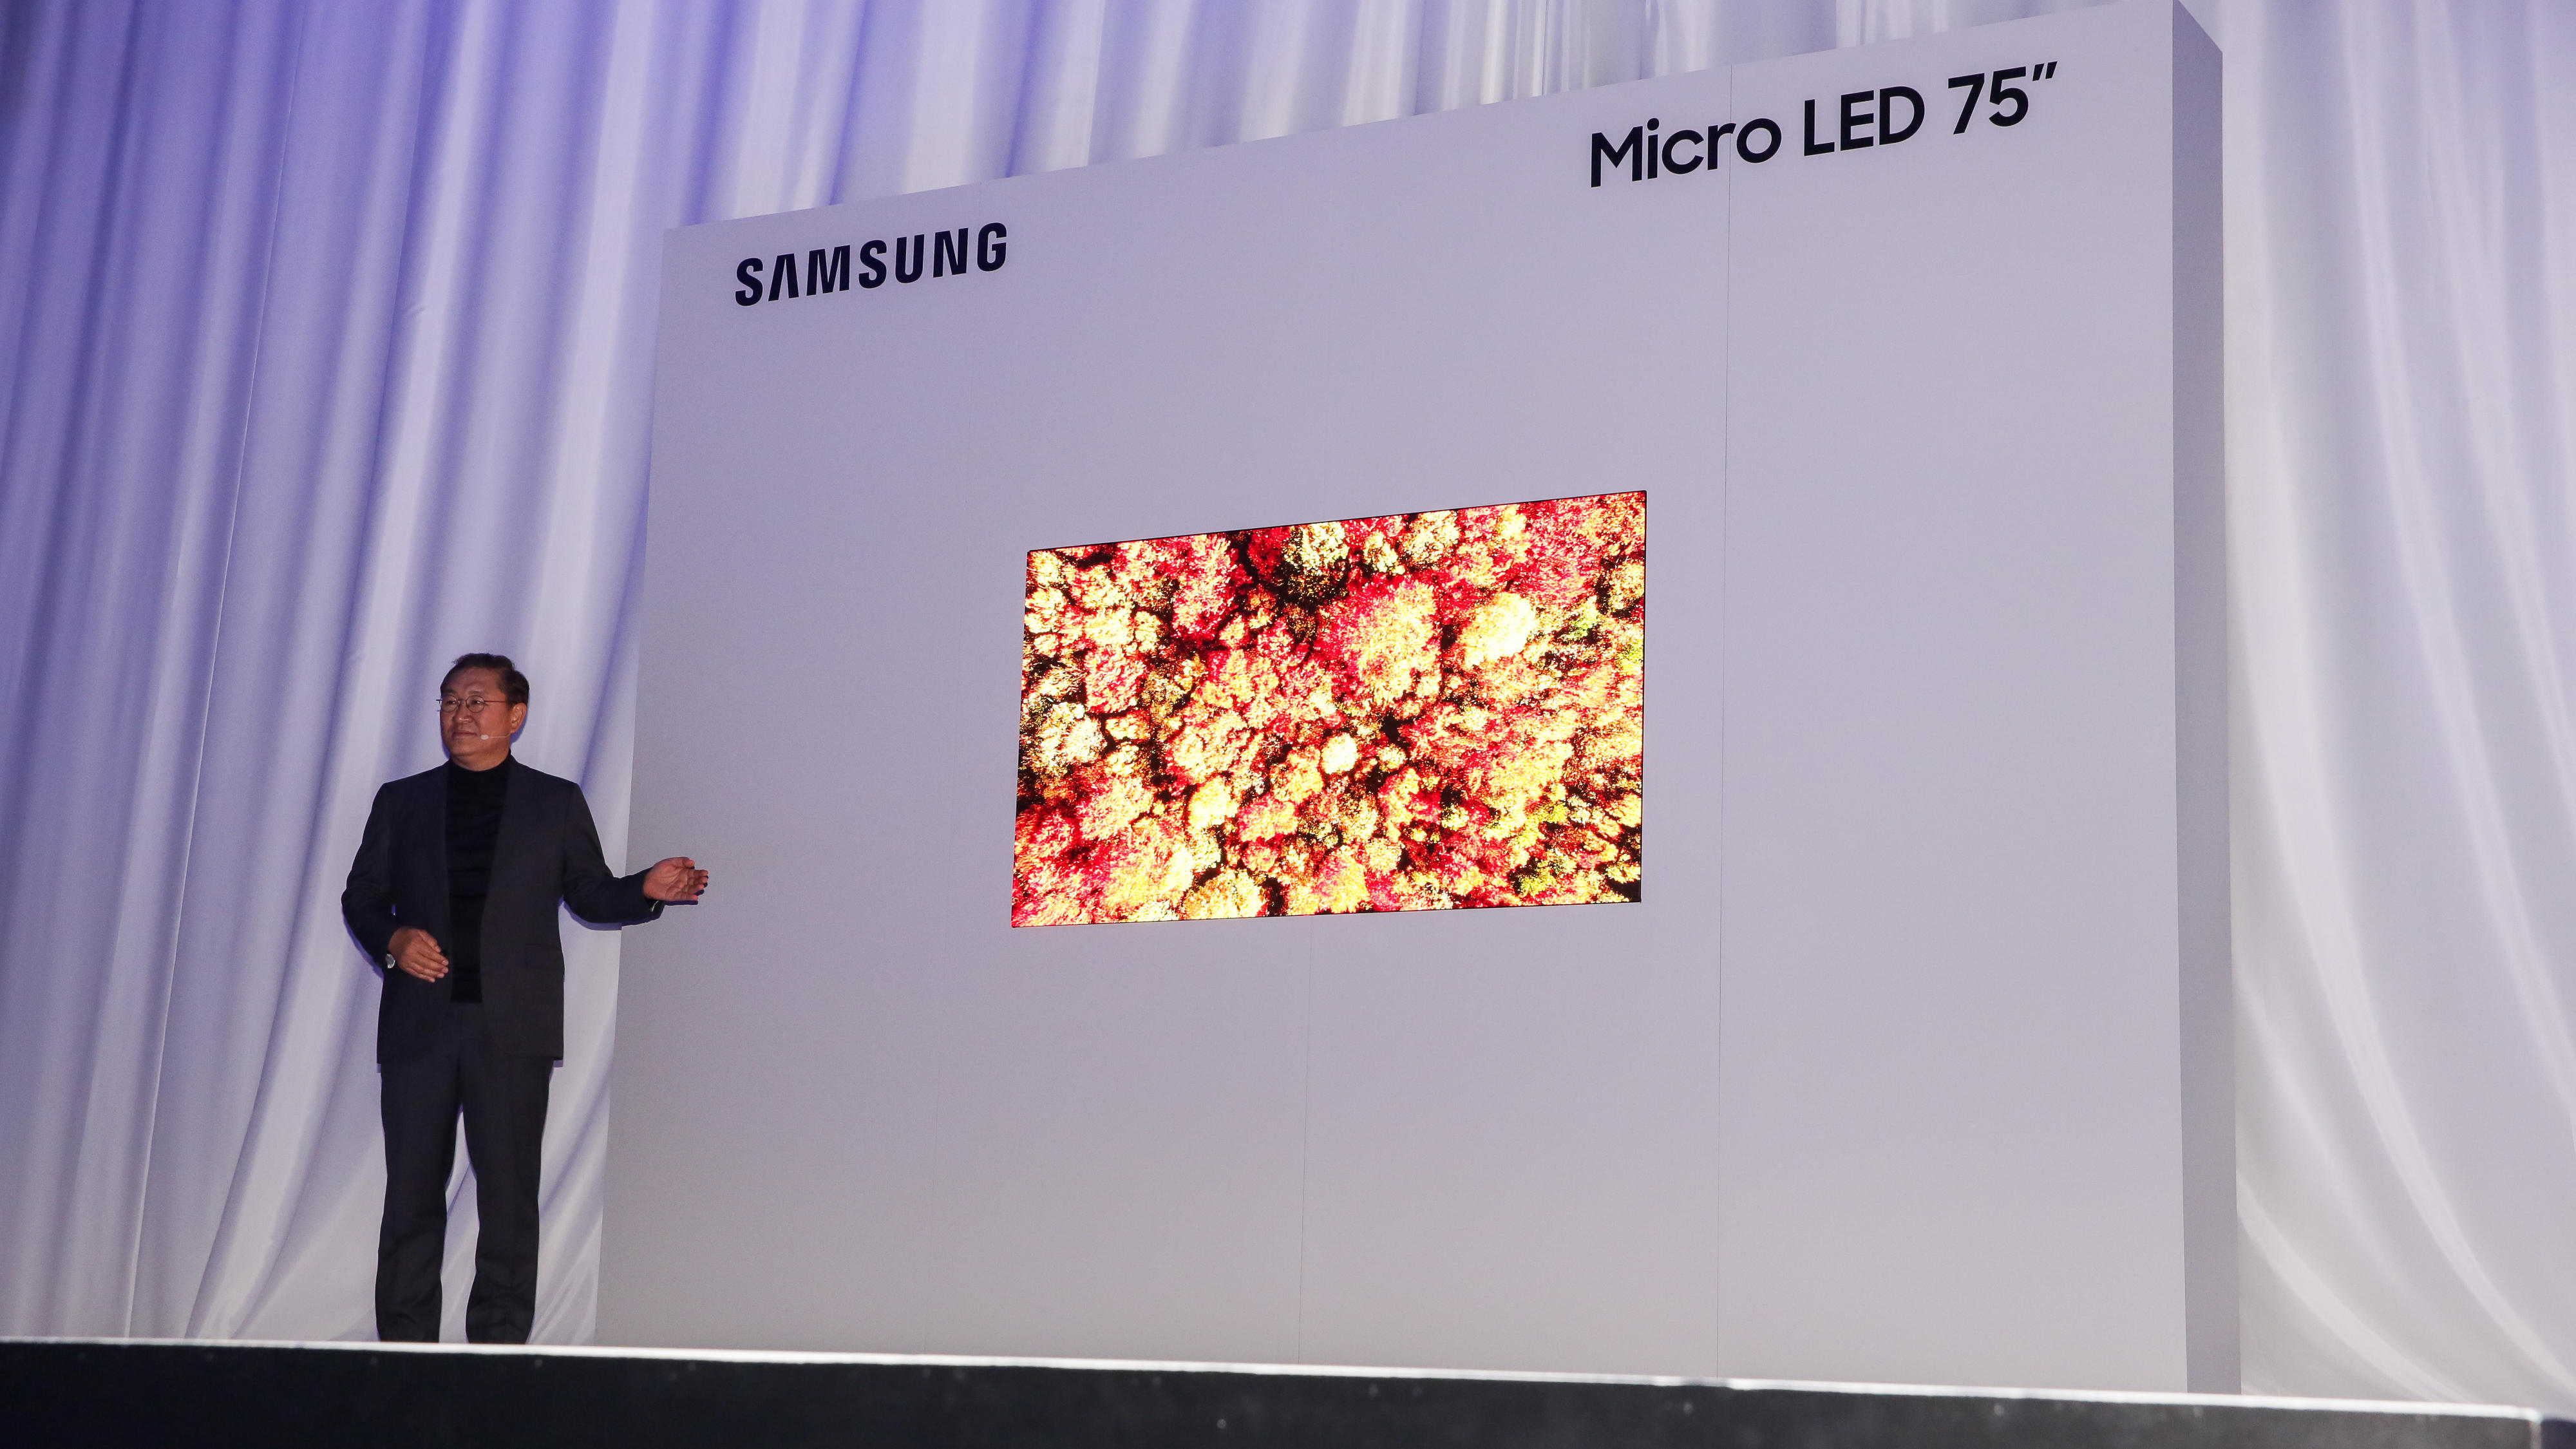 Samsung's 75-inch MicroLED